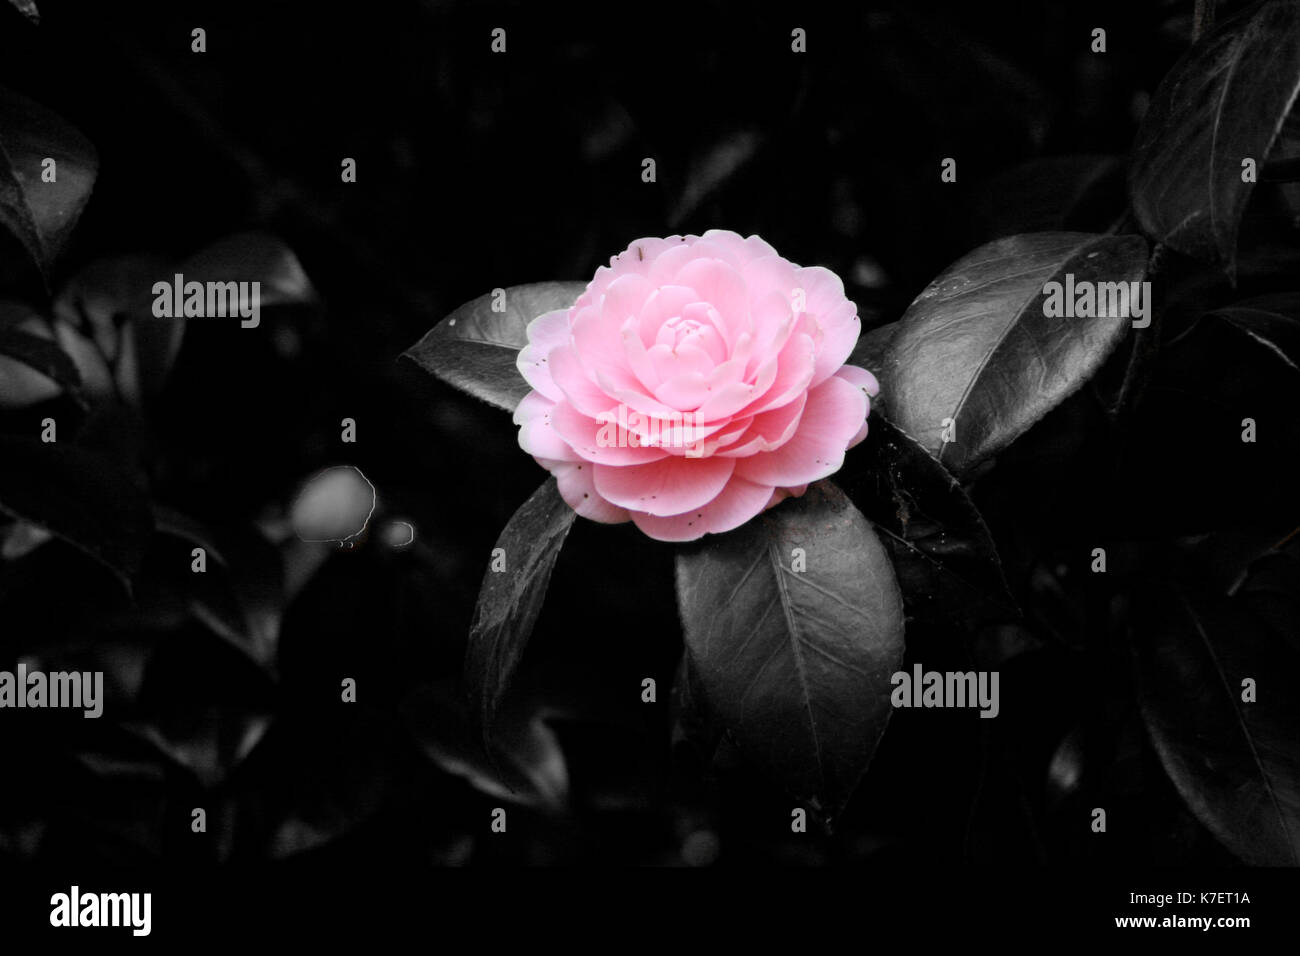 Flower blooming with a B/W background - Stock Image